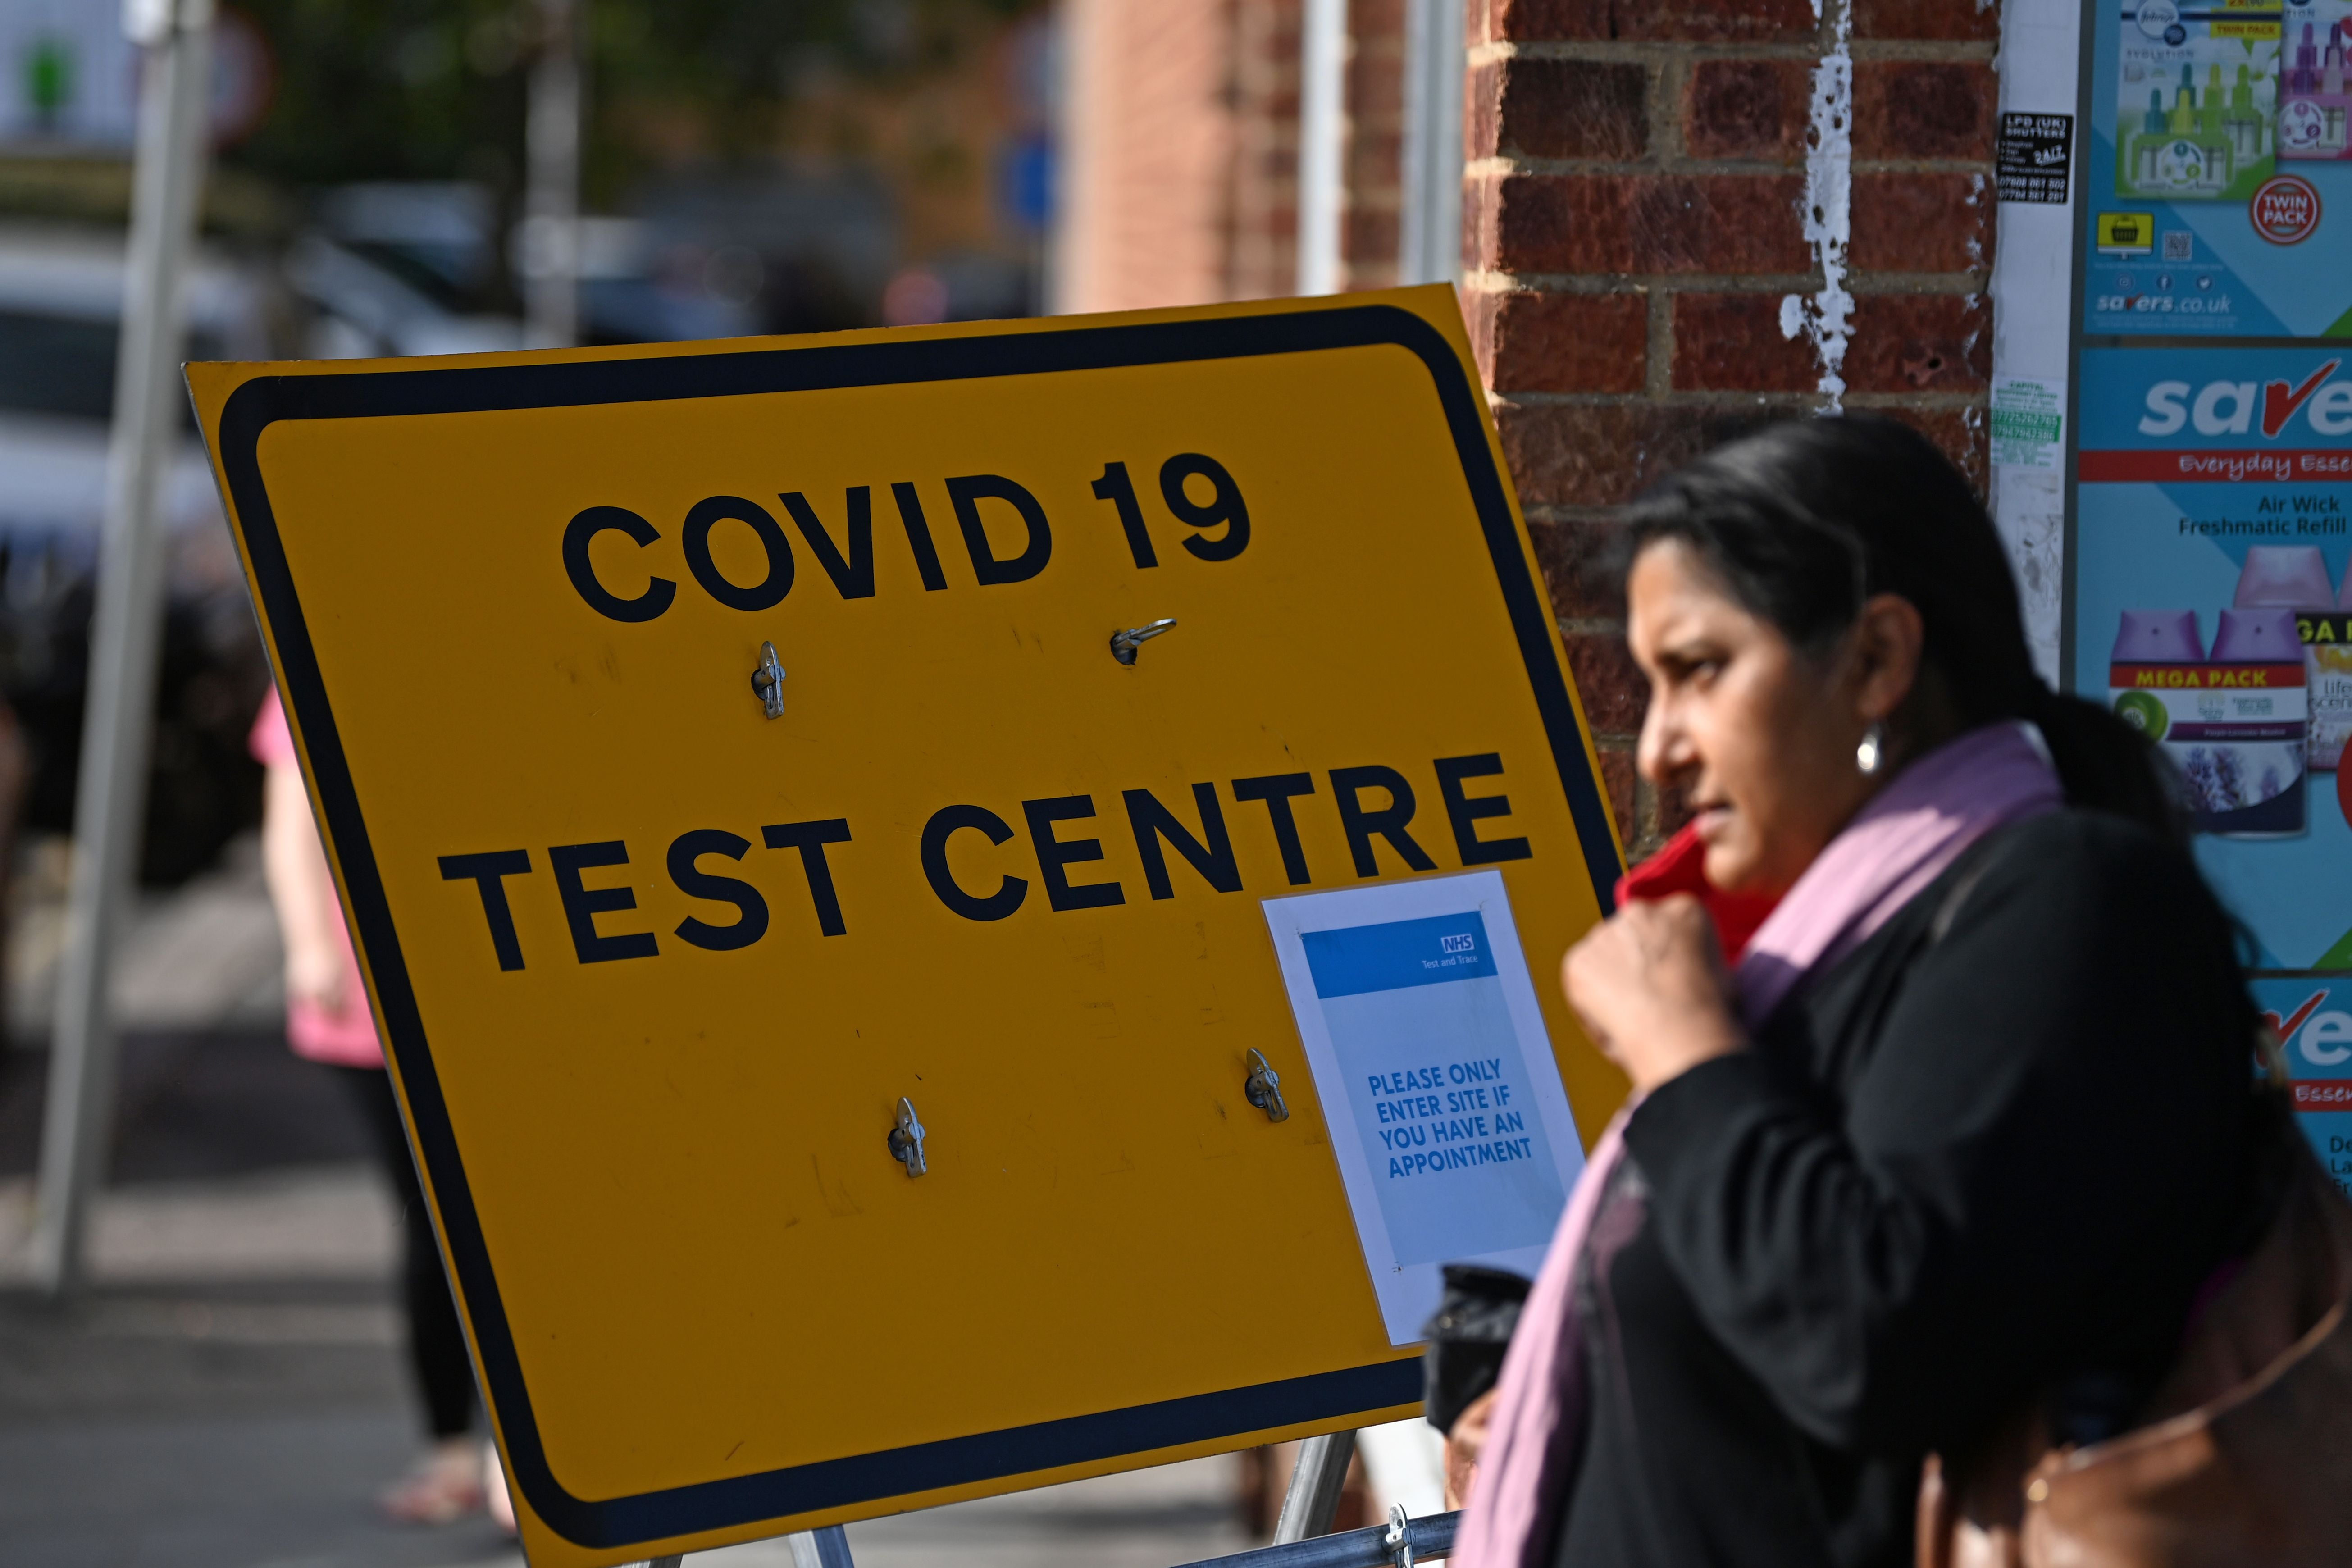 UK coronavirus news - live: Boris Johnson says 'second wave' coming as millions face new lockdown measures - The Independent